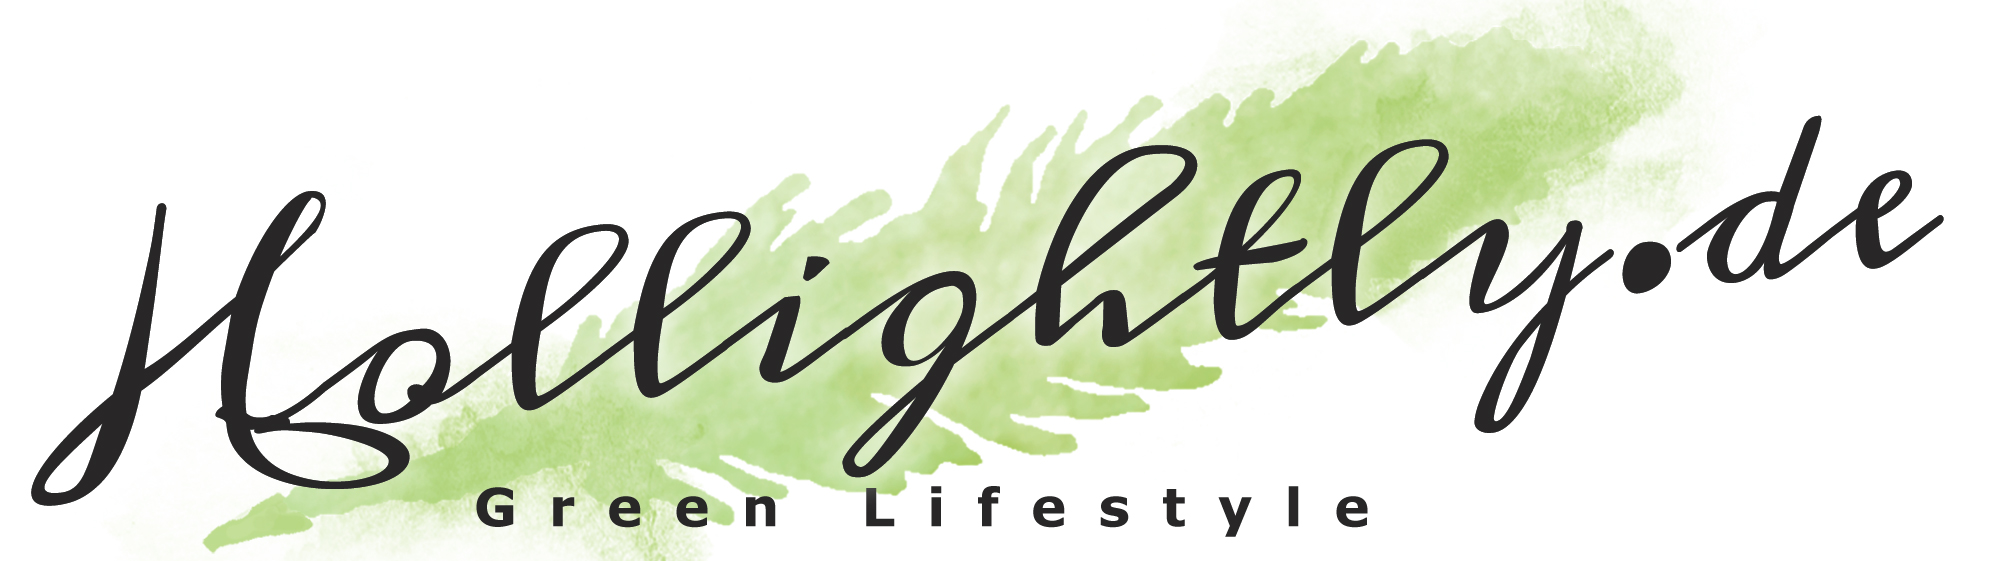 Hollightly.de is a green fashion, lifestyle and travel blog.